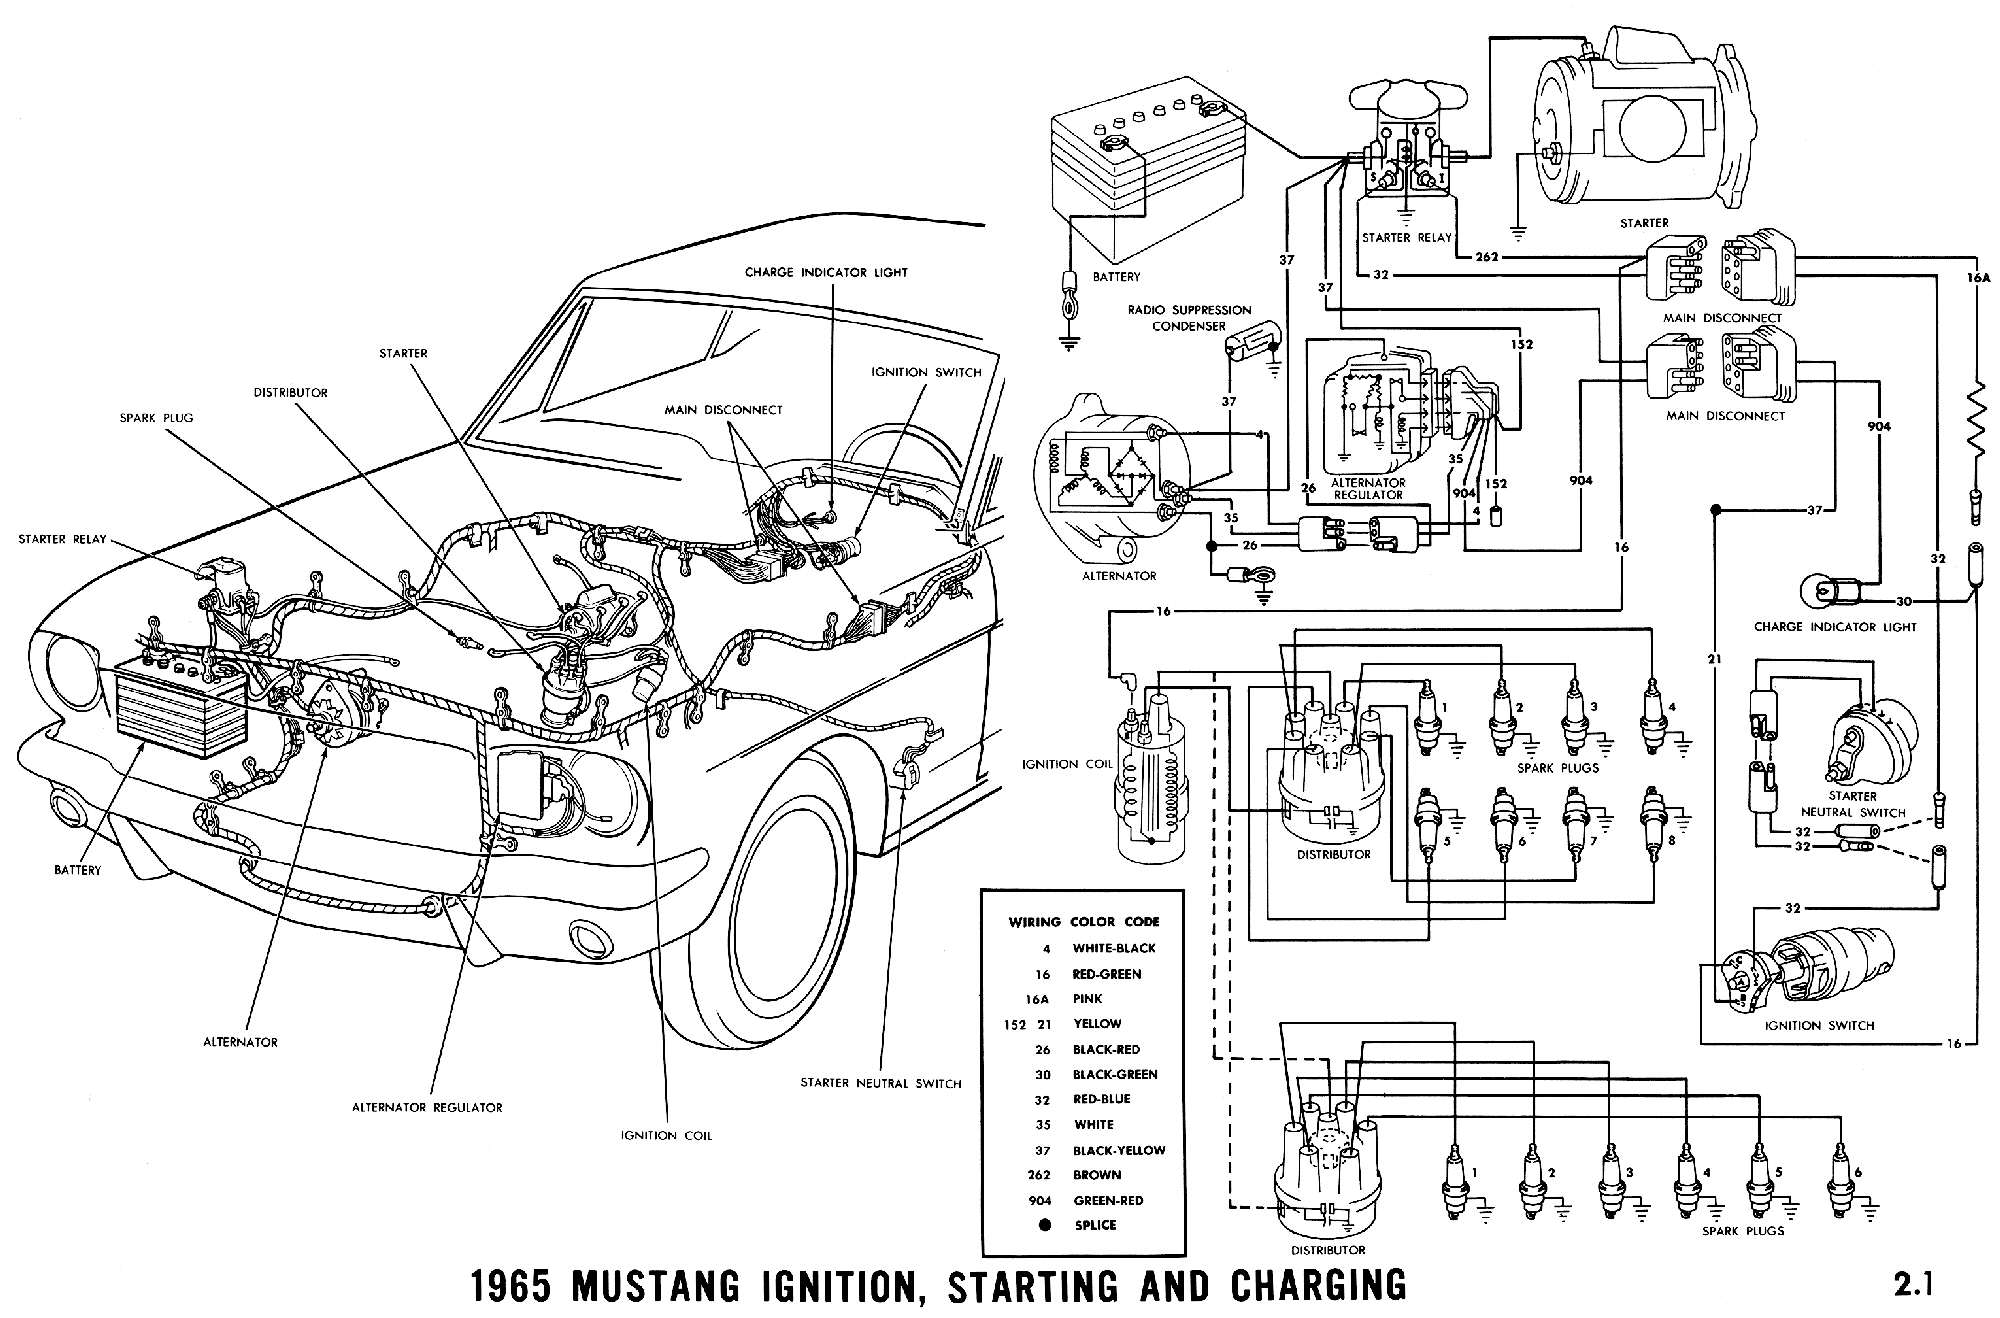 1965c 1965 mustang wiring diagrams average joe restoration 1966 mustang wiring diagrams at webbmarketing.co